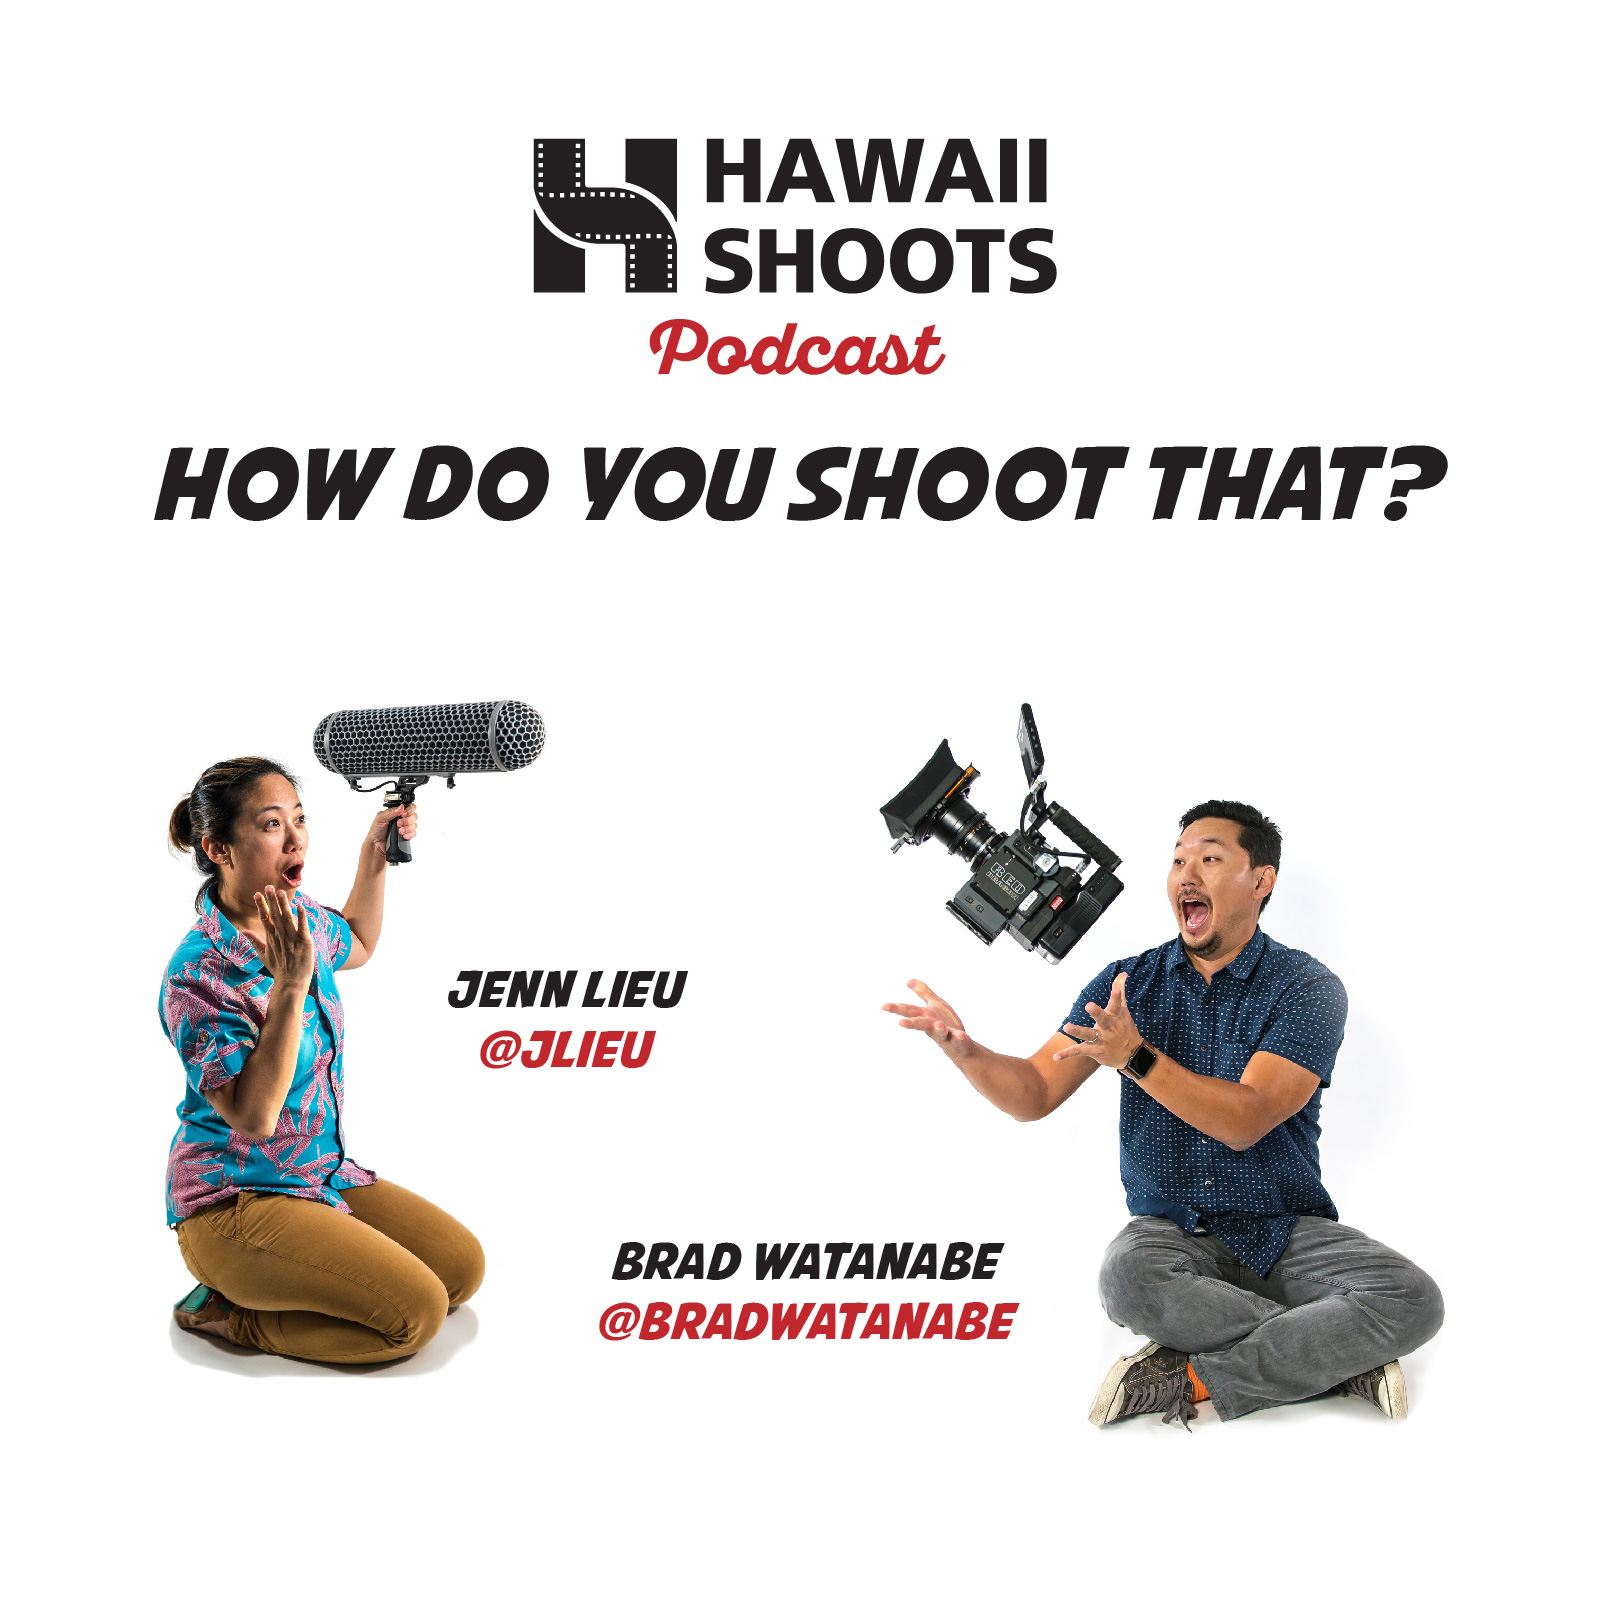 Hawaii Shoots: How Do You Shoot That?